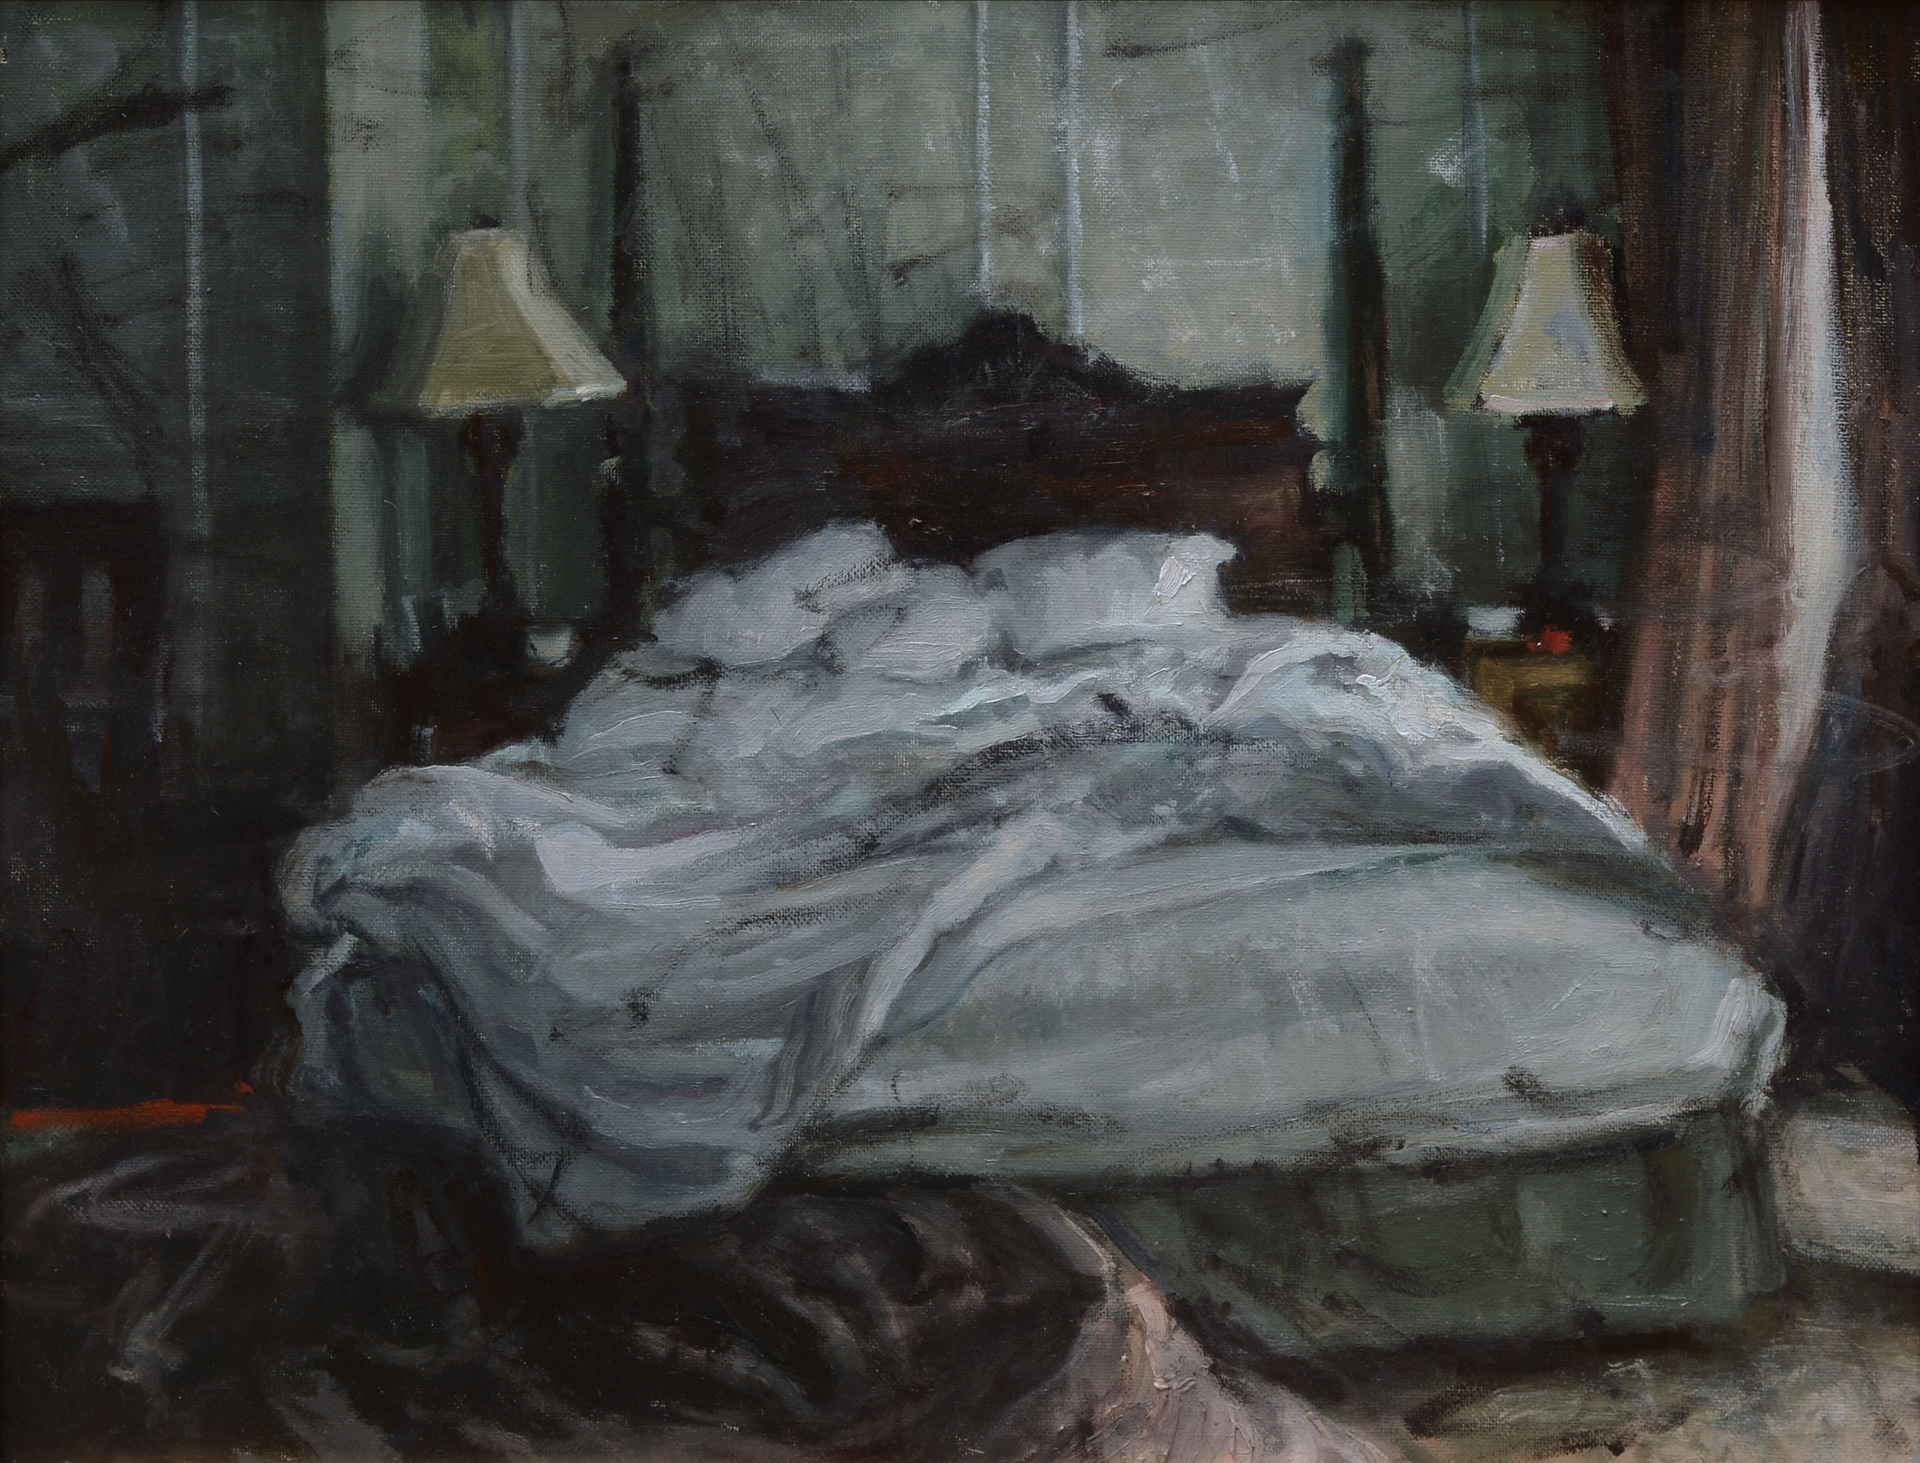 The Bed by Jim Beckner